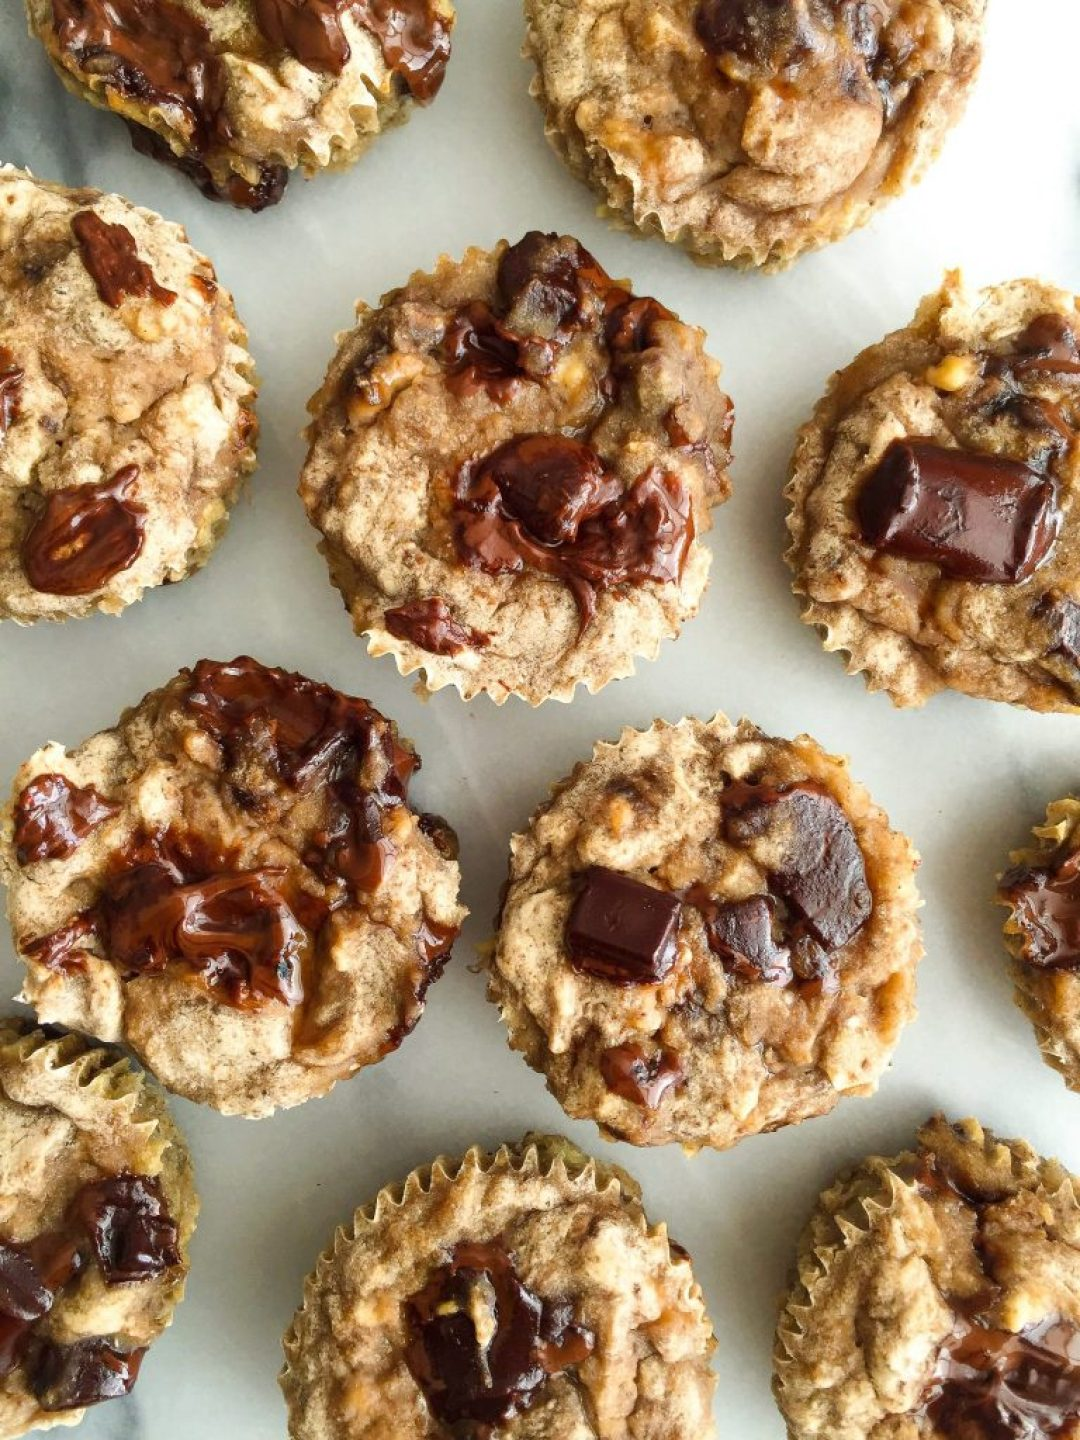 Vegan and Gluten-free Healthy Cinnamon-Spiced Chocolate Chunk Banana Muffins ready in less than 30 minutes